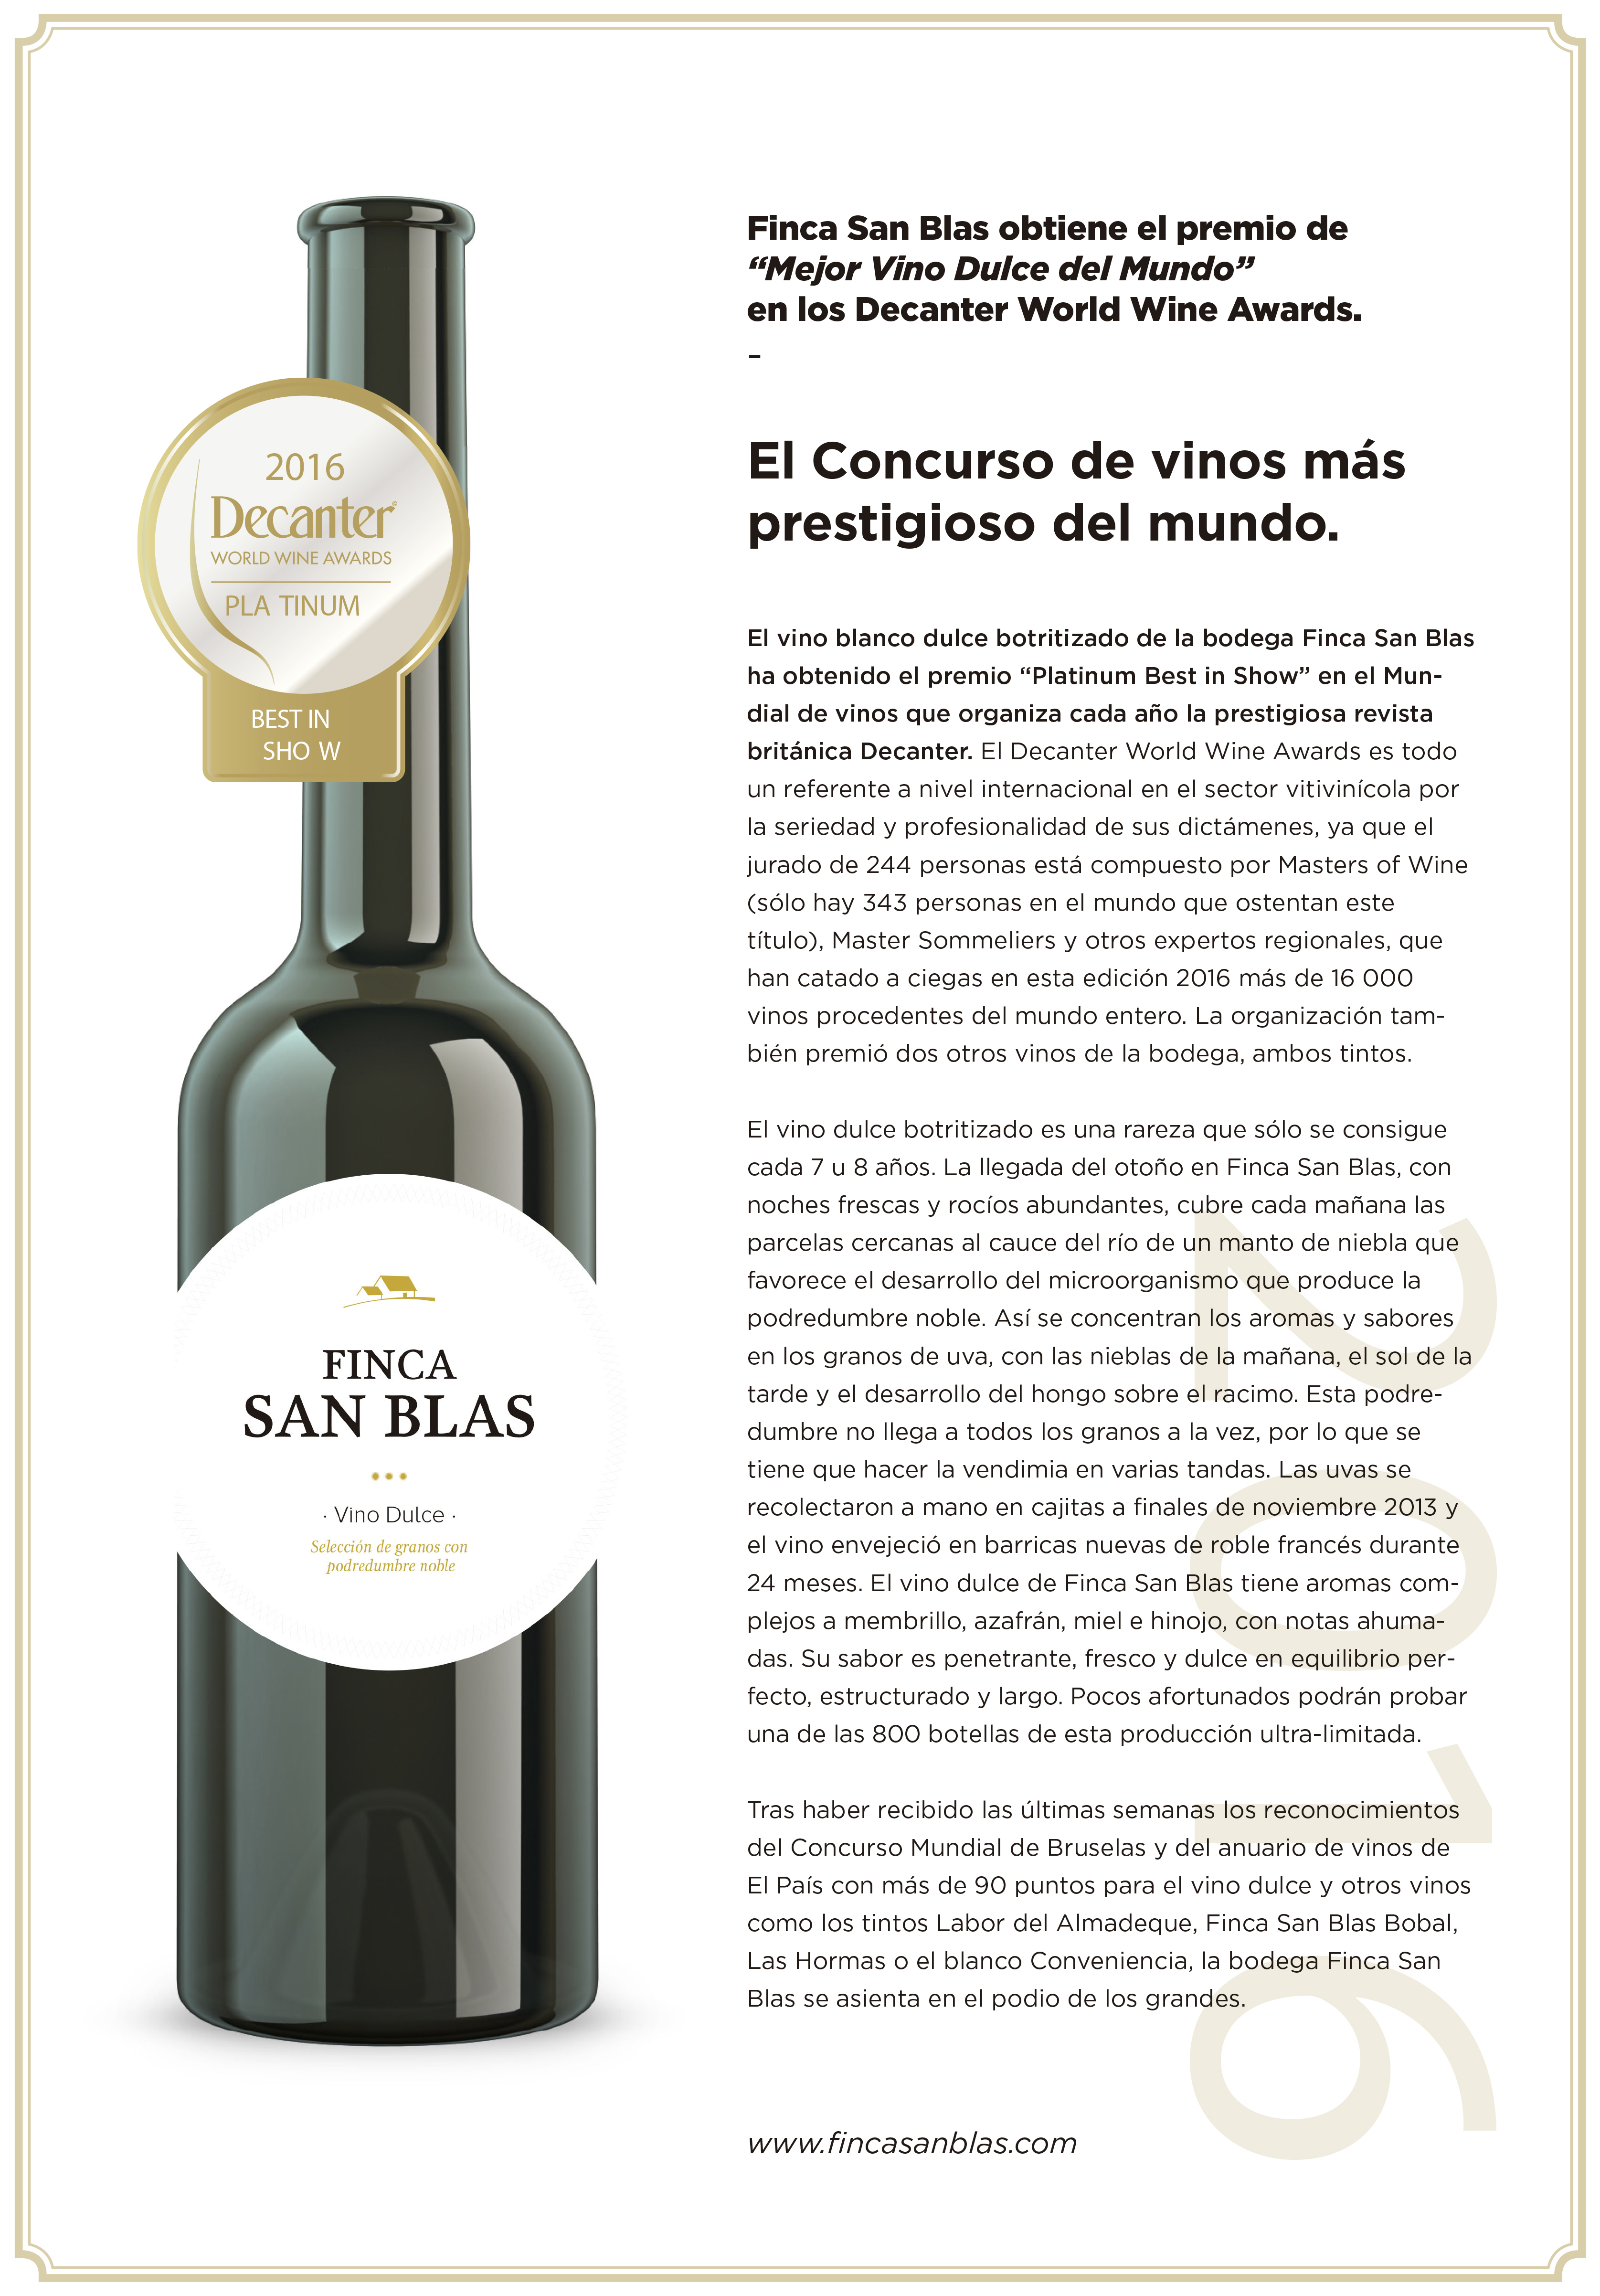 FSB PREMIO DULCE 13 DECANTER